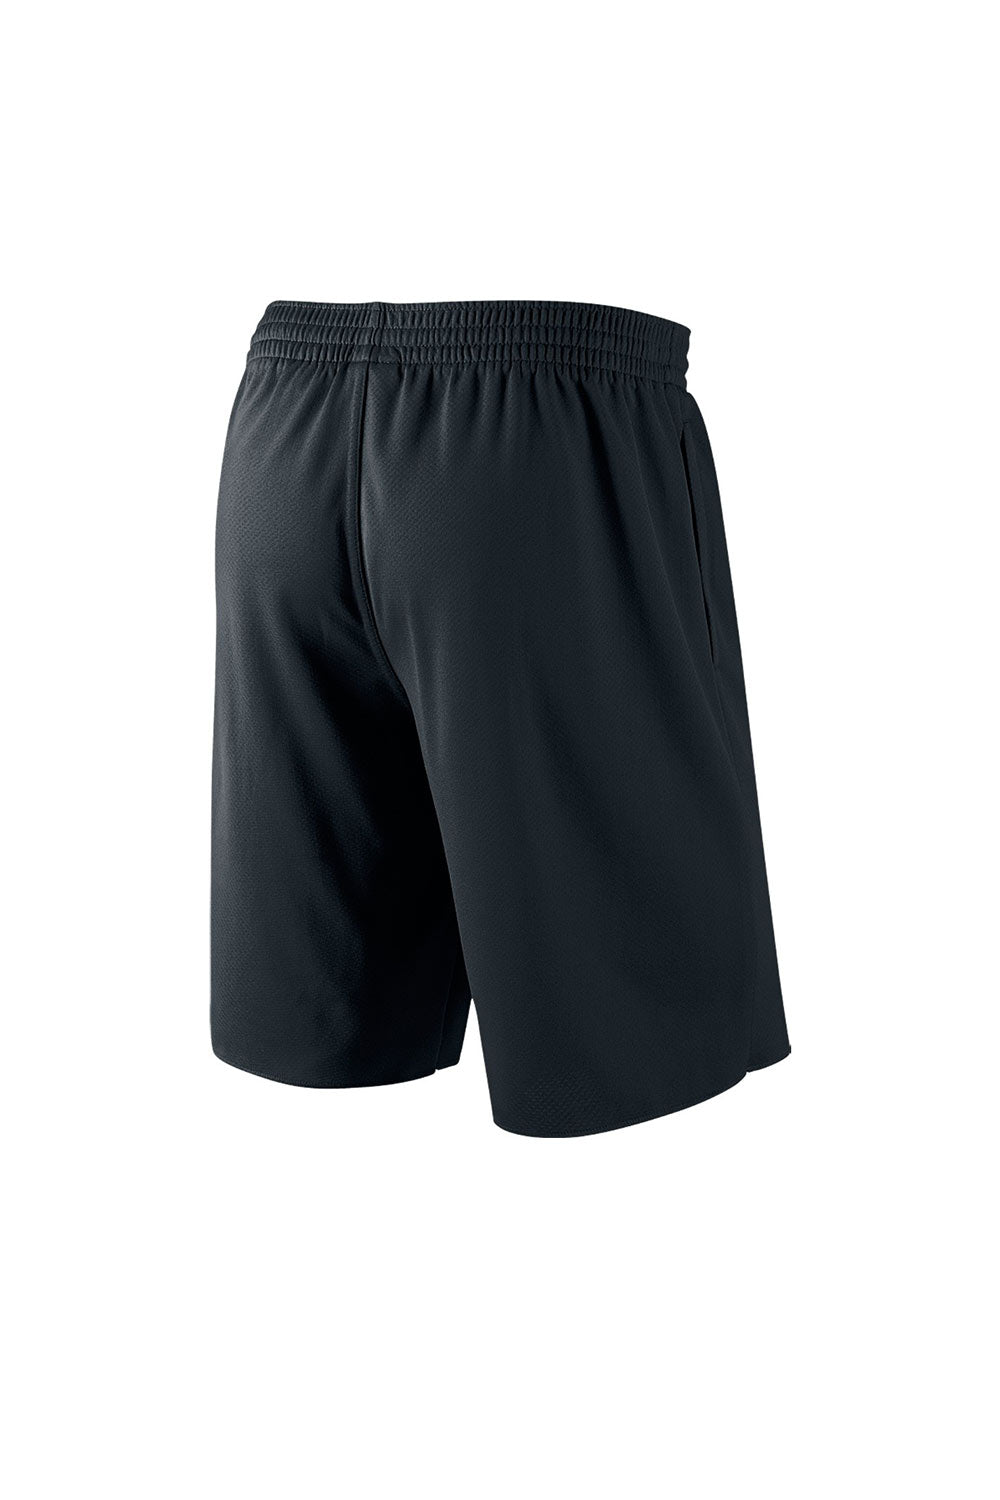 Nike SB Dri-FIT Sunday Shorts - Black